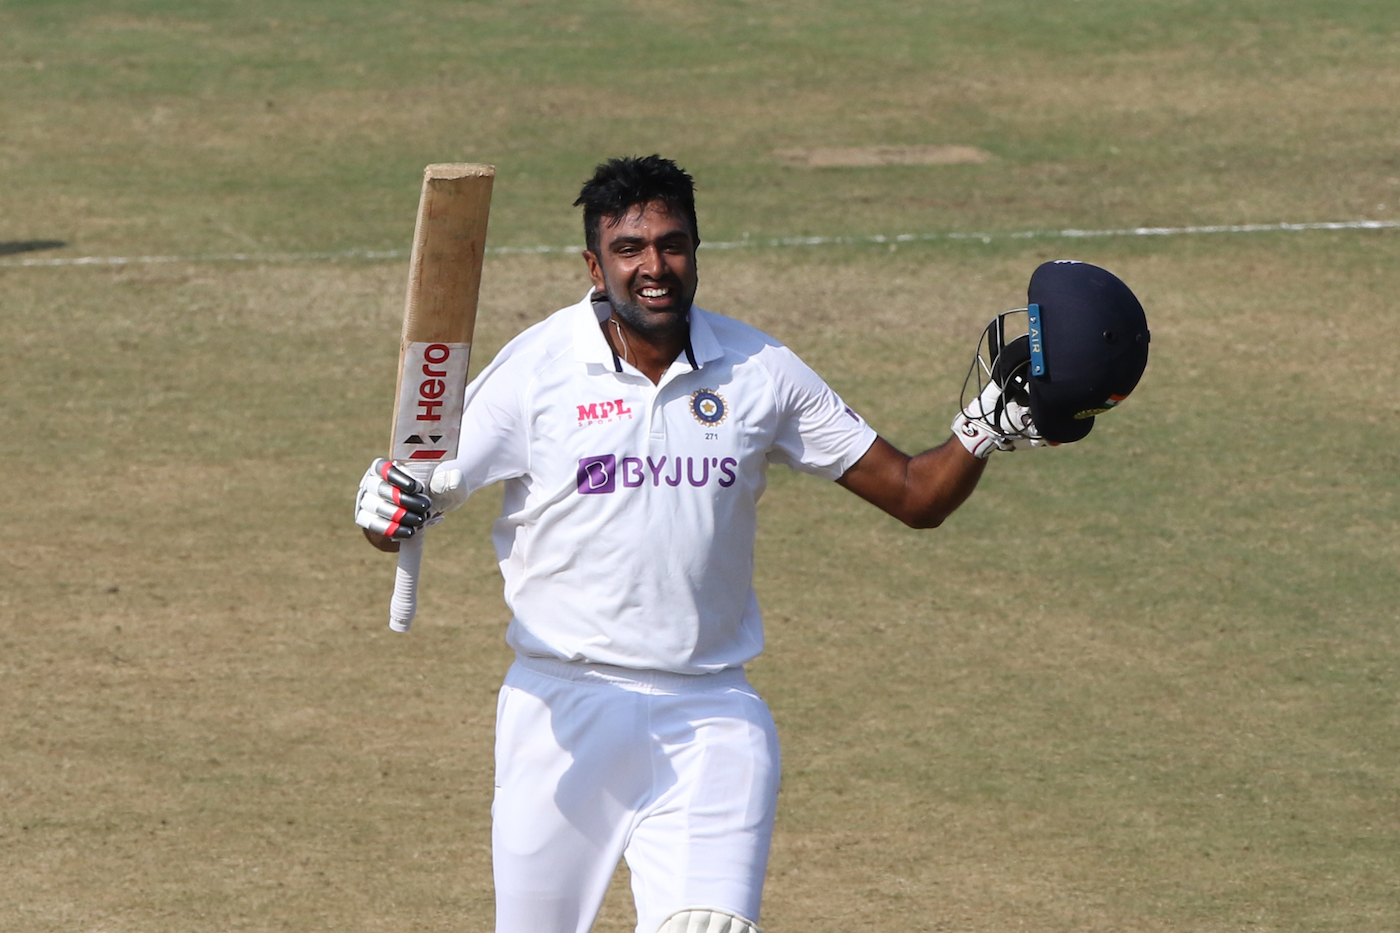 R Ashwin celebrating his 5th Test century | BCCI